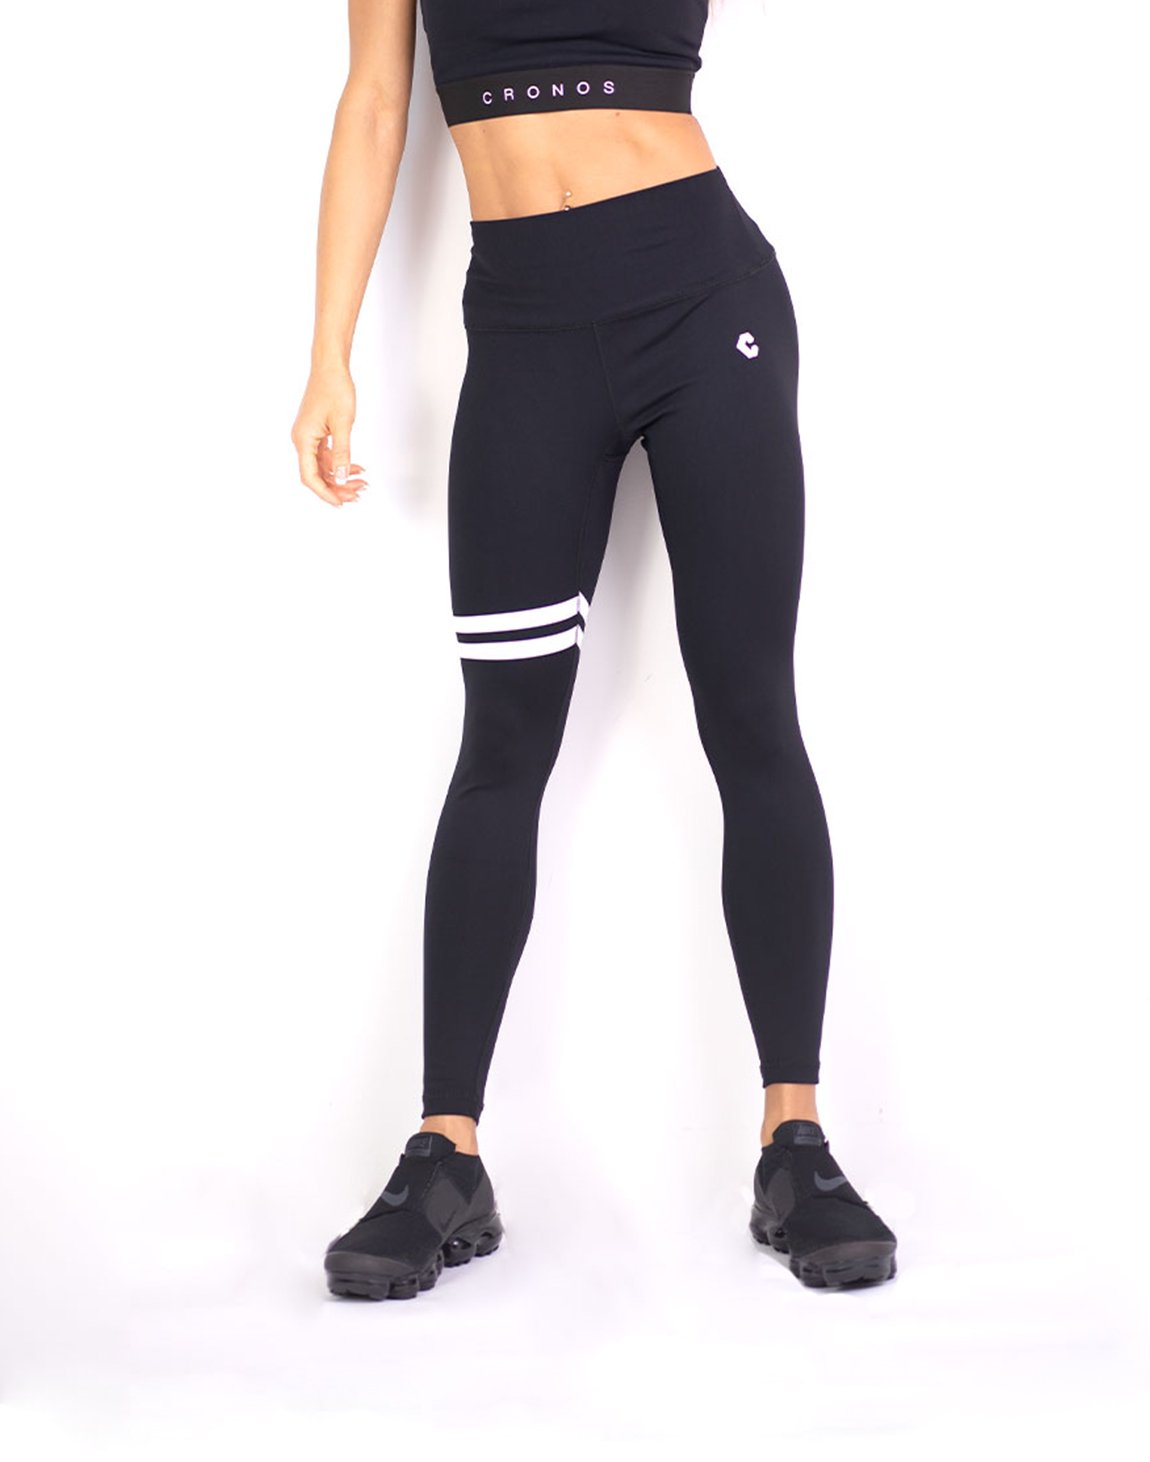 <img class='new_mark_img1' src='https://img.shop-pro.jp/img/new/icons1.gif' style='border:none;display:inline;margin:0px;padding:0px;width:auto;' />CRONOS 2LINE LEGGINS BLACK